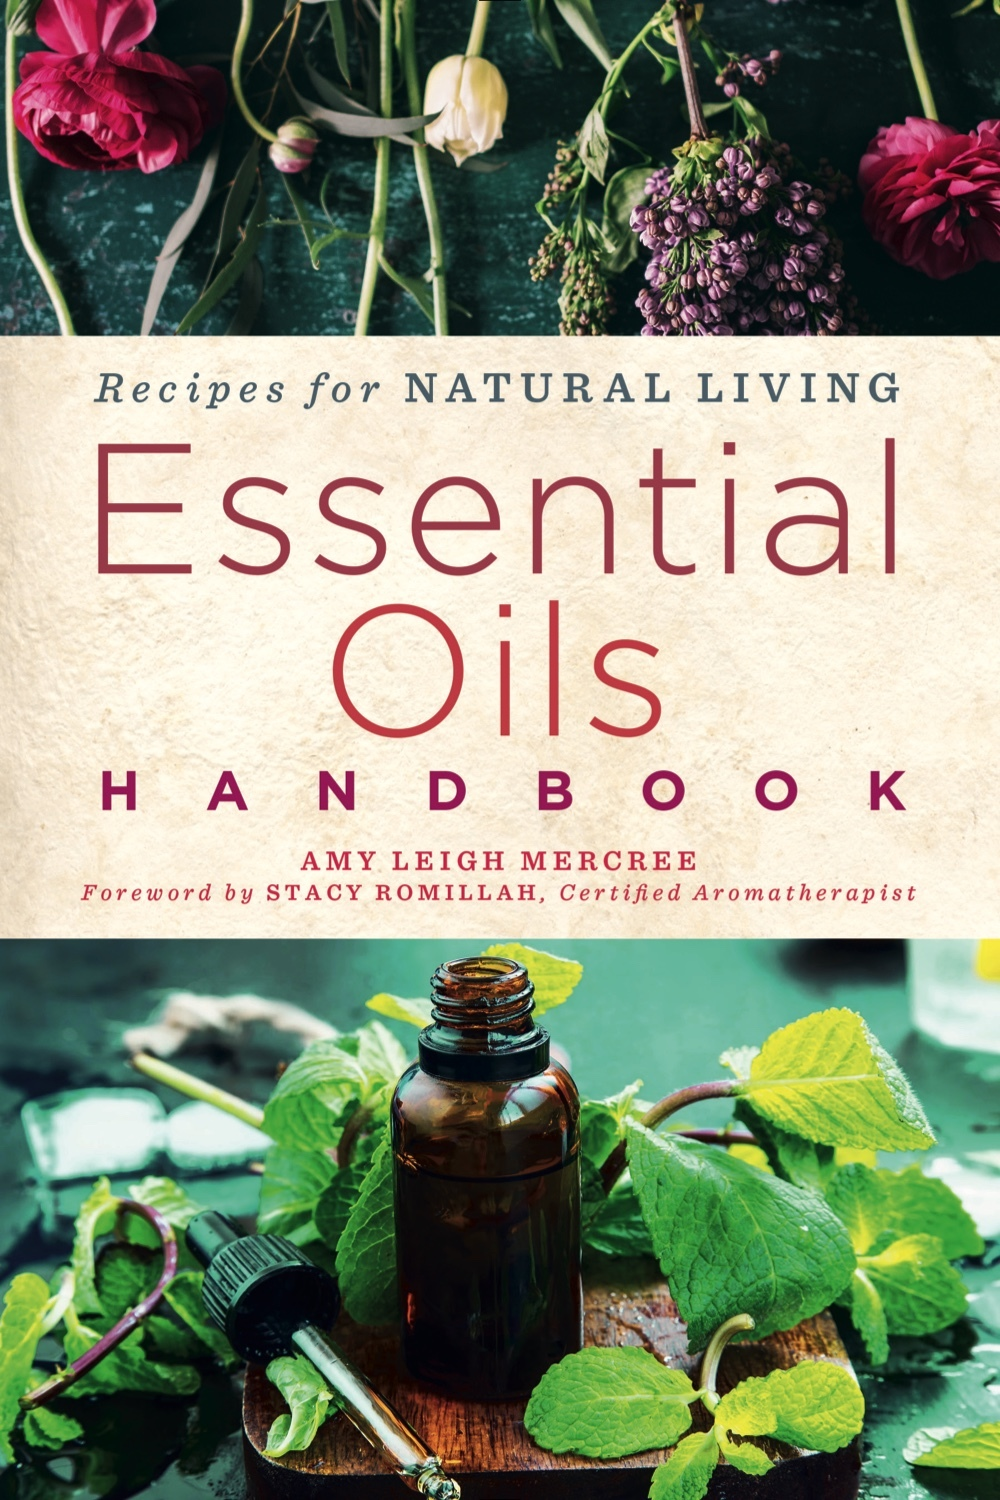 Essential Oils Handbook by Amy Leigh Mercree